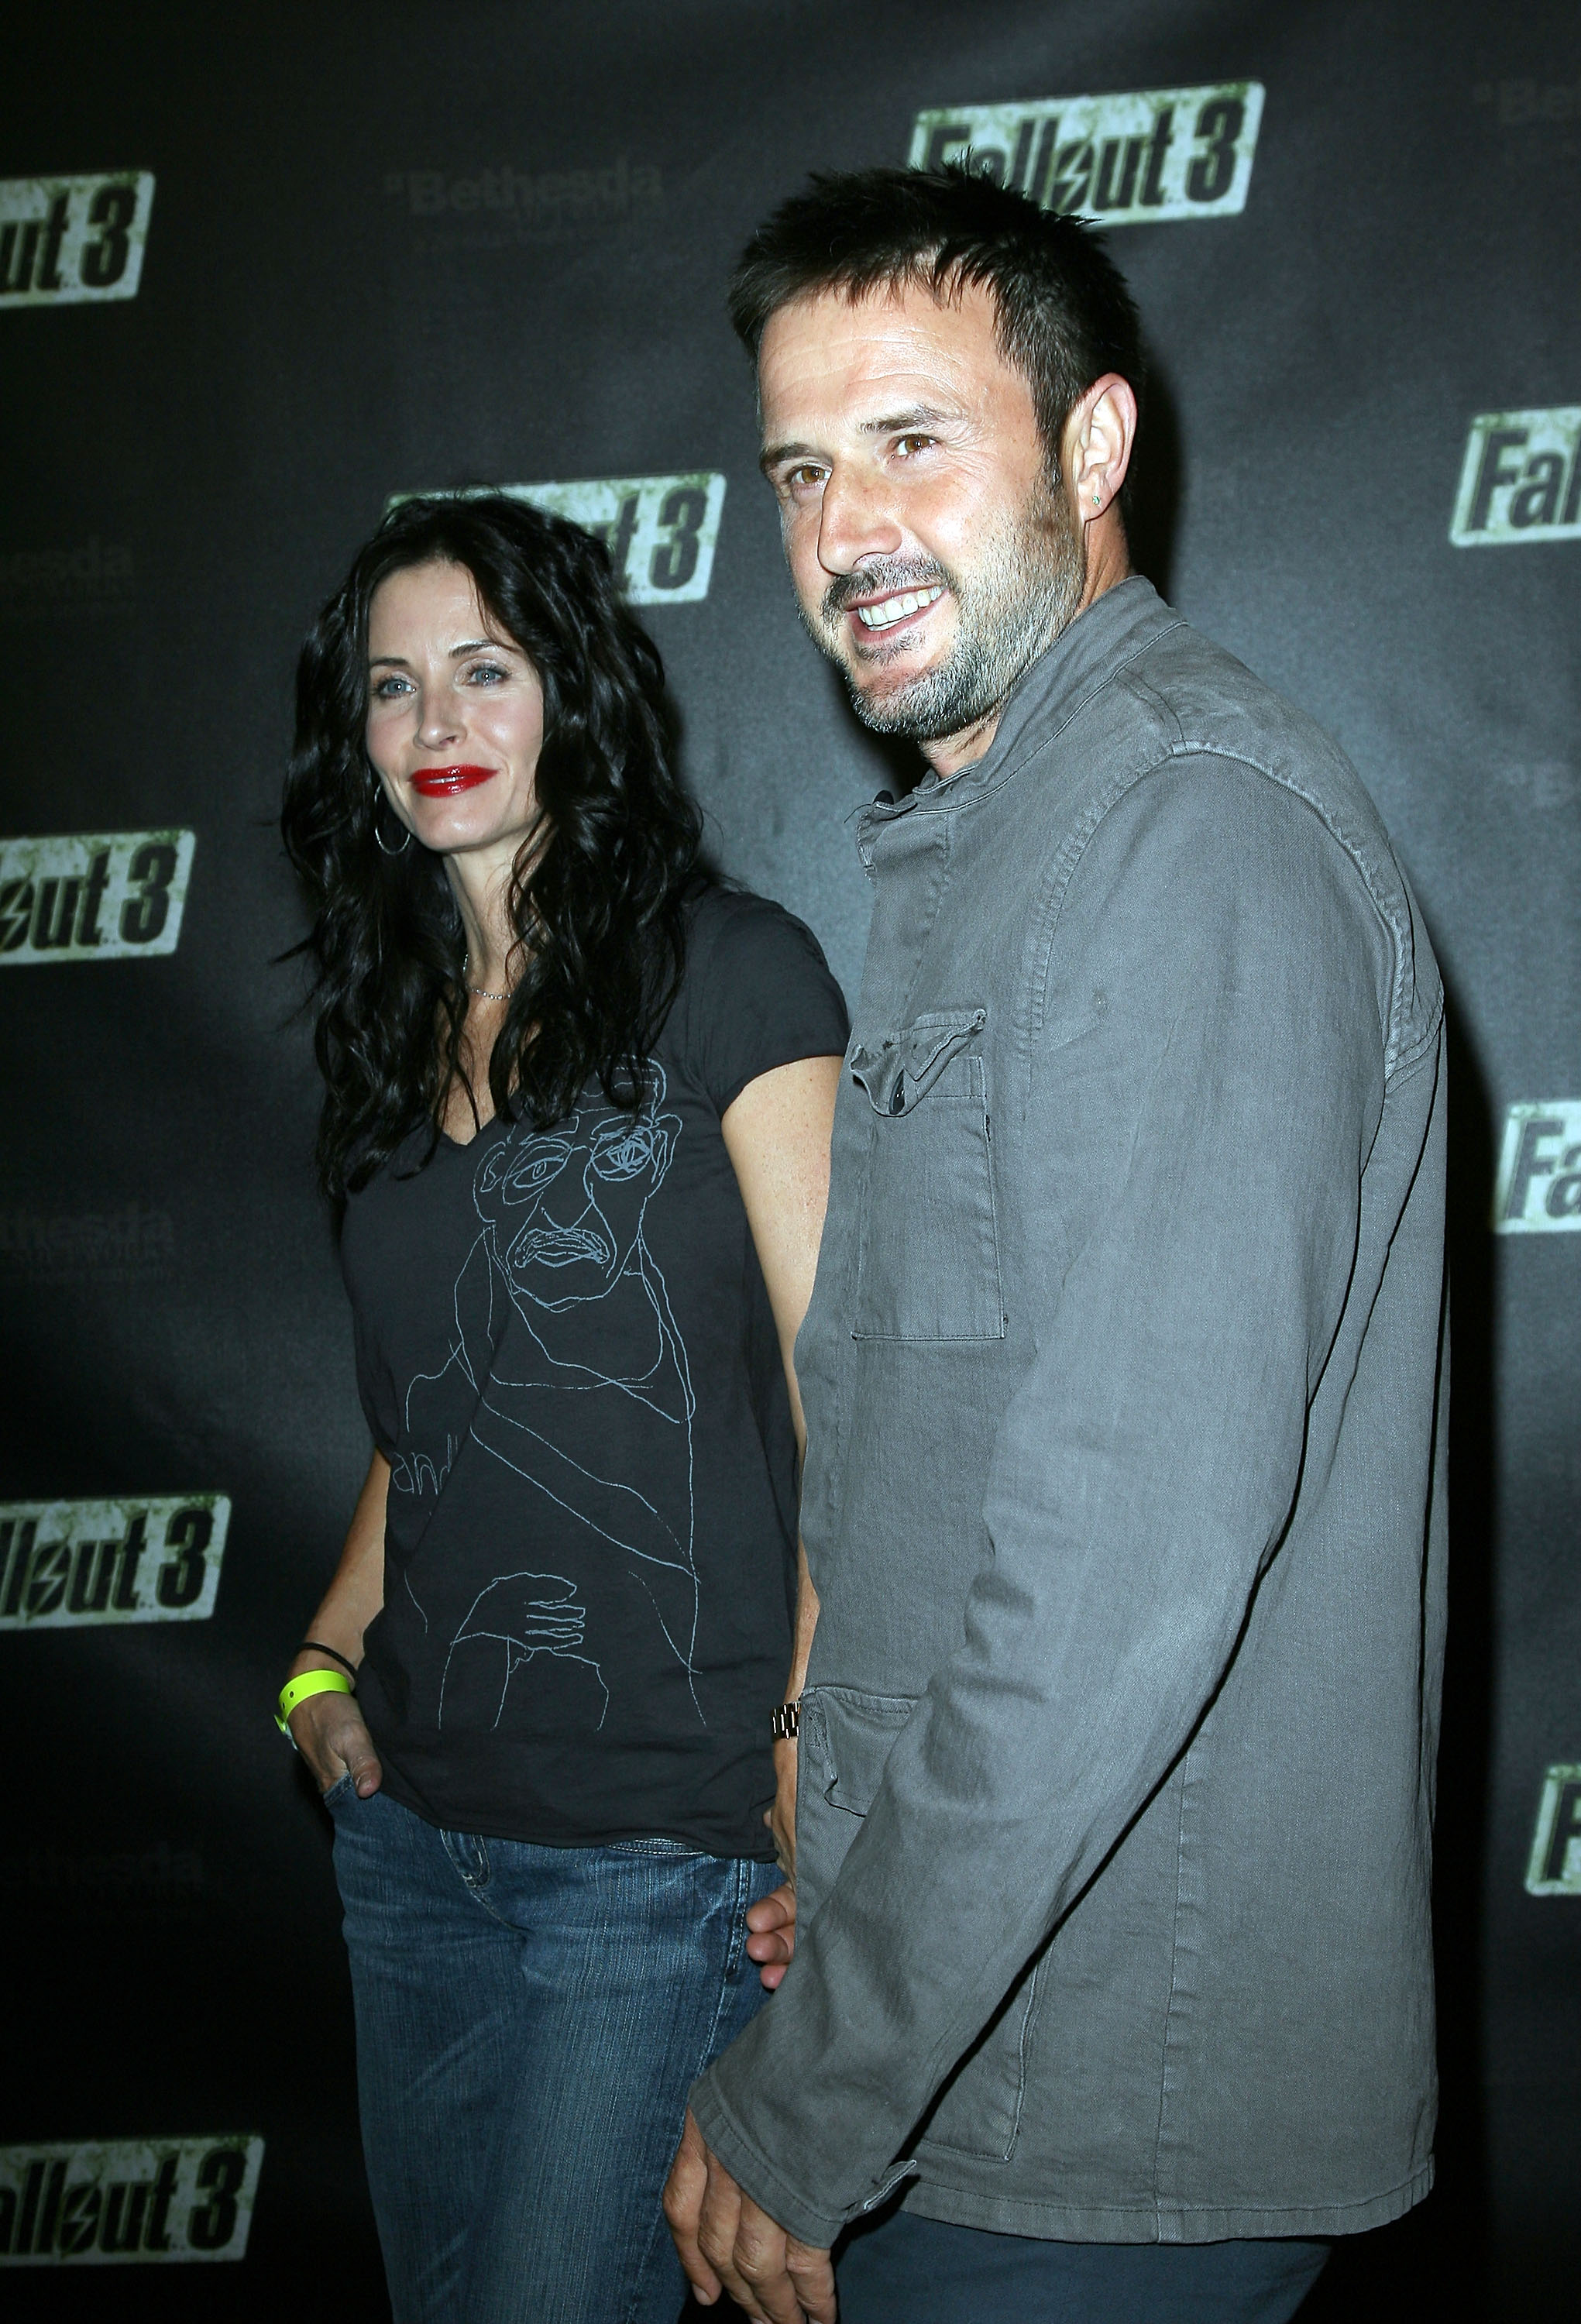 55367_Celebutopia-Courteney_Cox-Launch_Party_for_Fallout_3_videogame-04_122_931lo.jpg